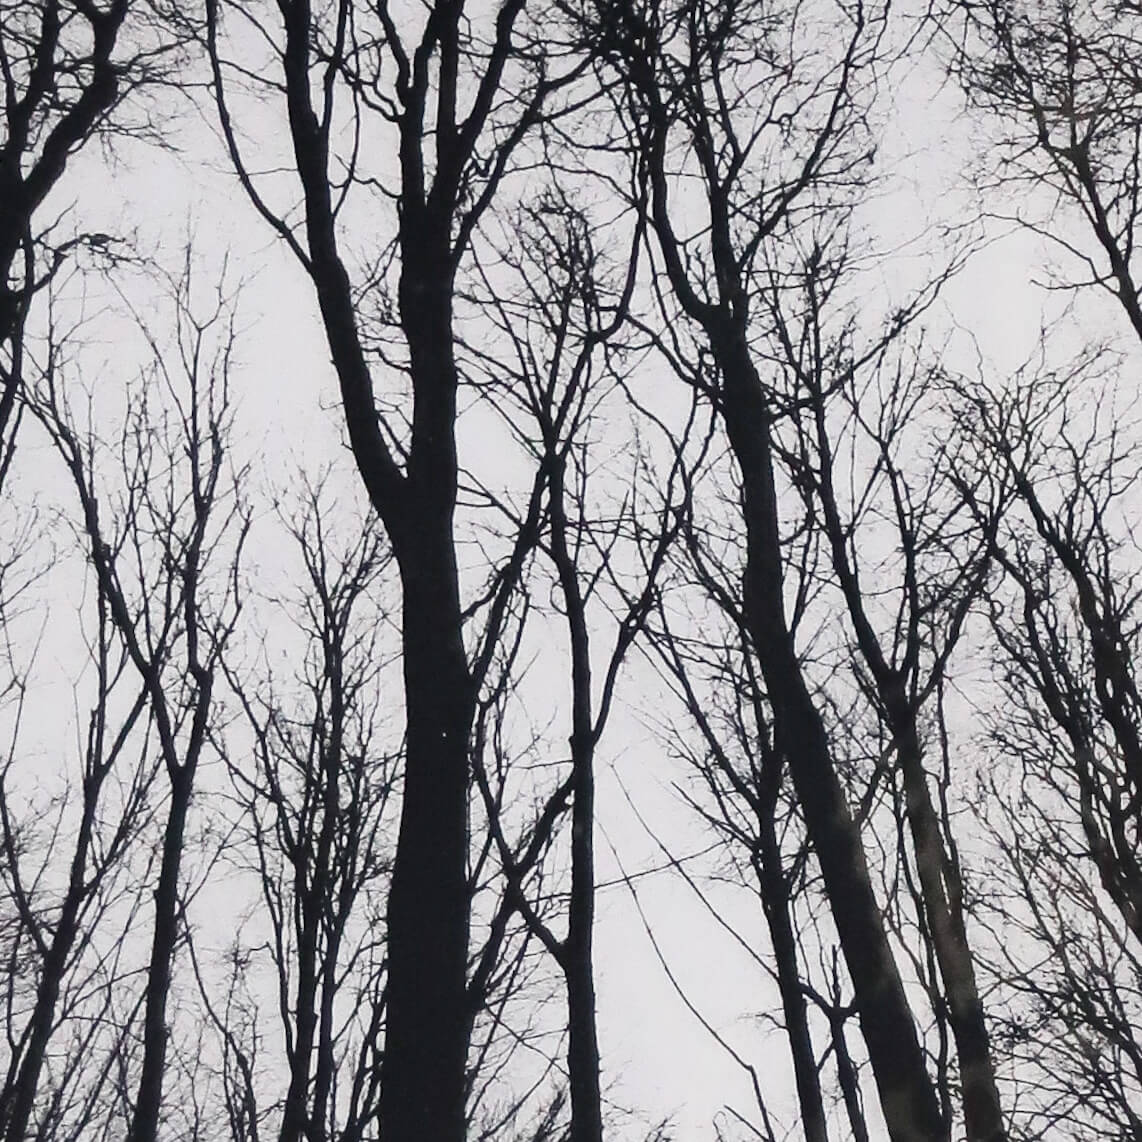 N58A3005 copy - Chorus of the Trees in Black and White III by Clare Grossman